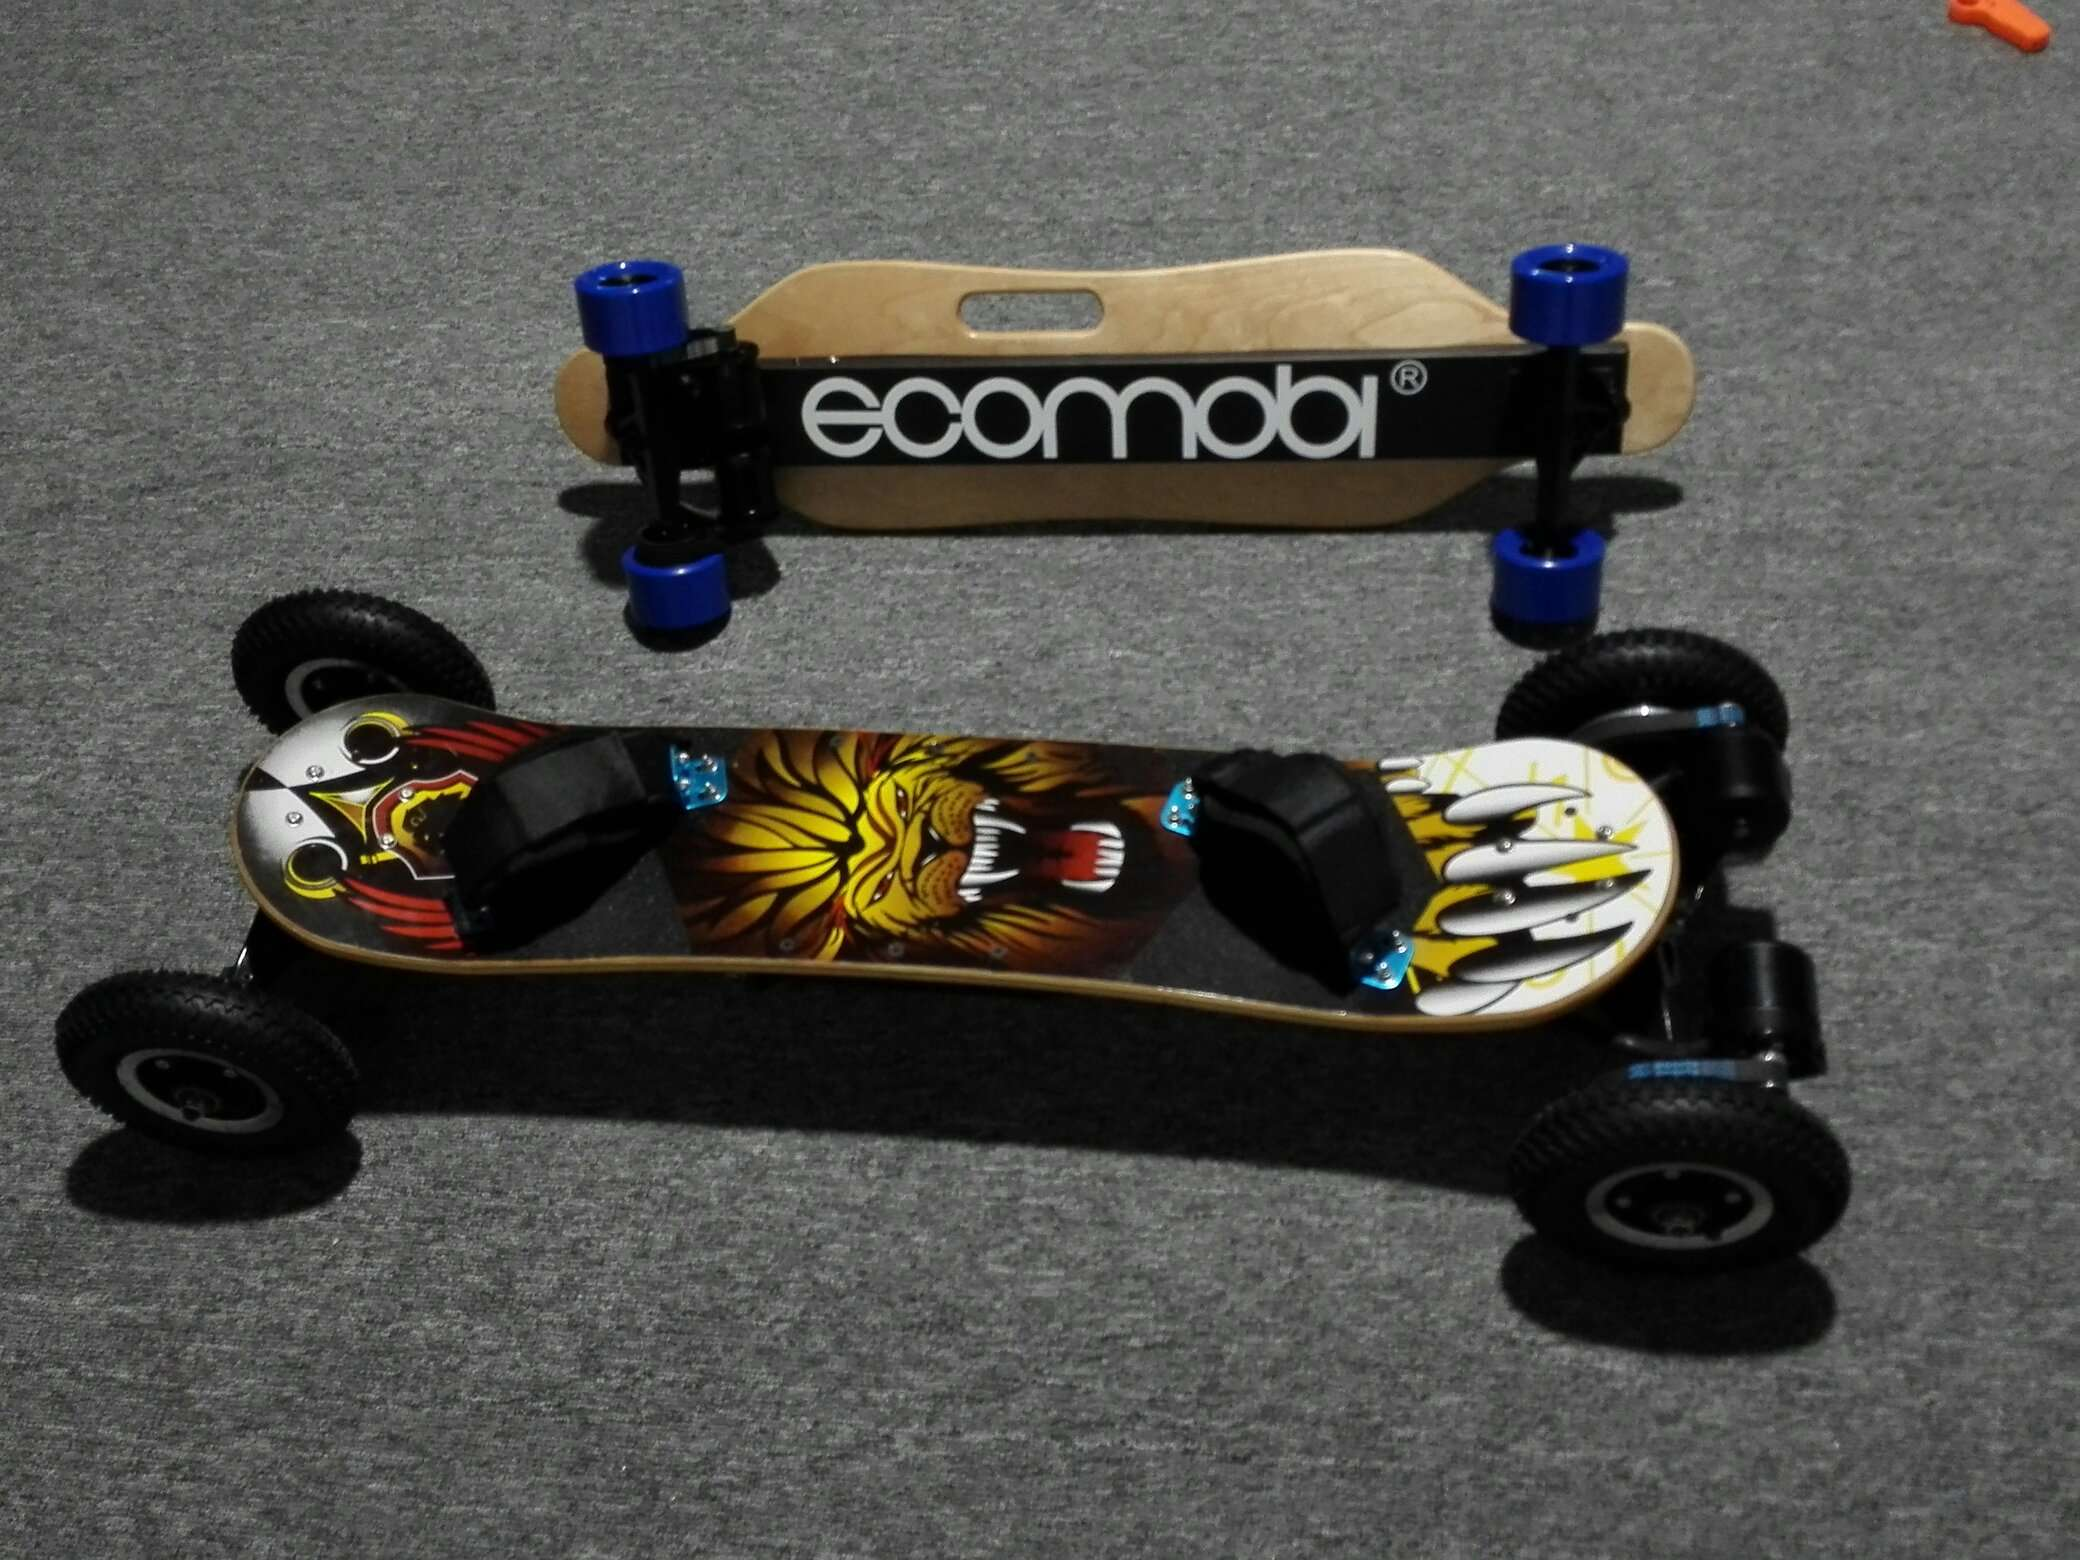 ecomobl ecomobi All terrain off road electric skateboard esk8 AT board high quality cheap price best top seller popular faster farther more fun street long mountain board ride skate samsung battery  evolve meepo backfire baja exway boards 14k watts power